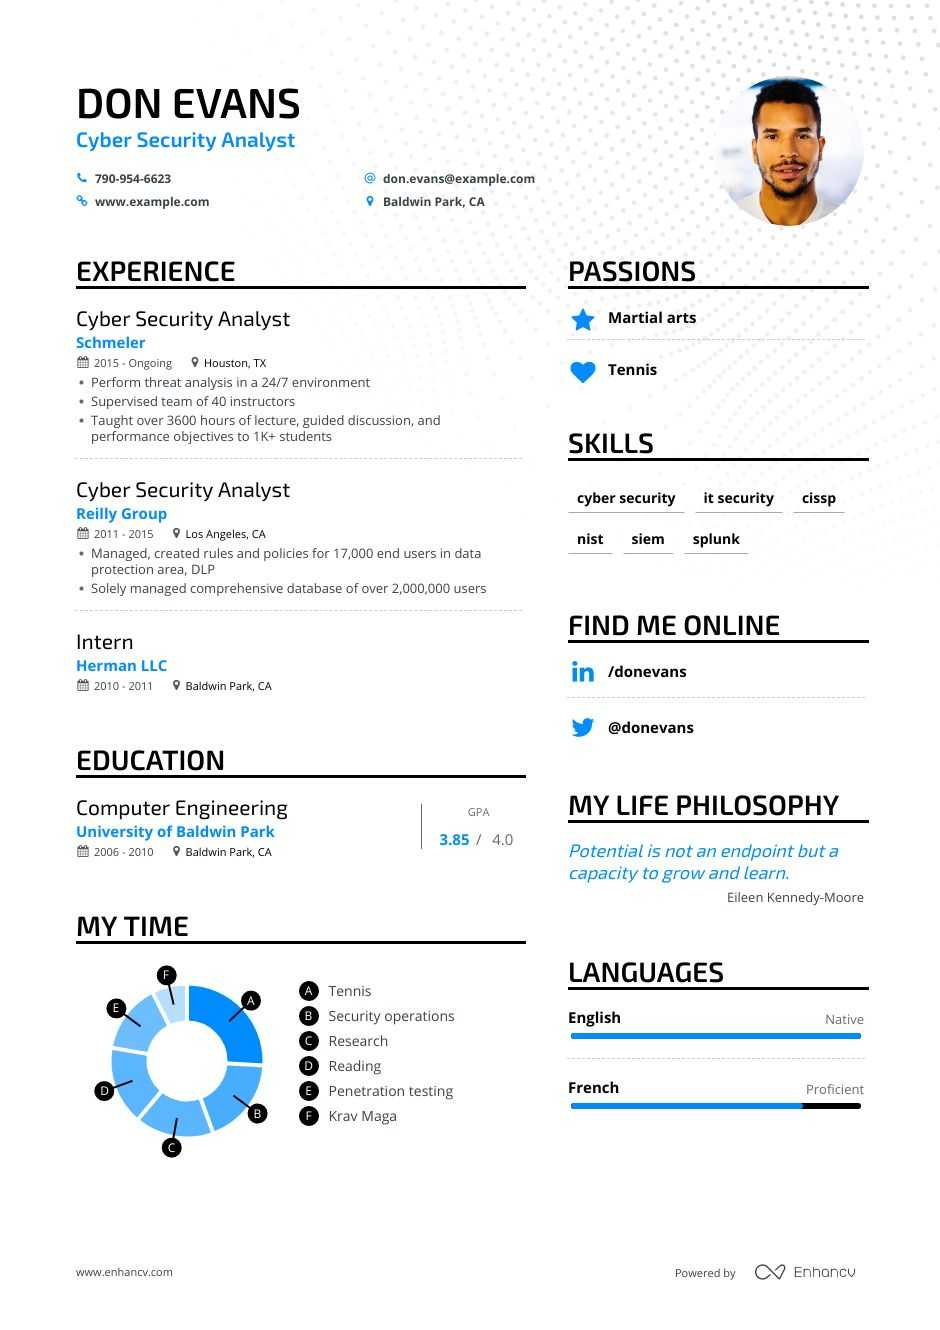 cyber security analyst resume examples guide pro tips enhancv template skills title for Resume Security Analyst Resume Template